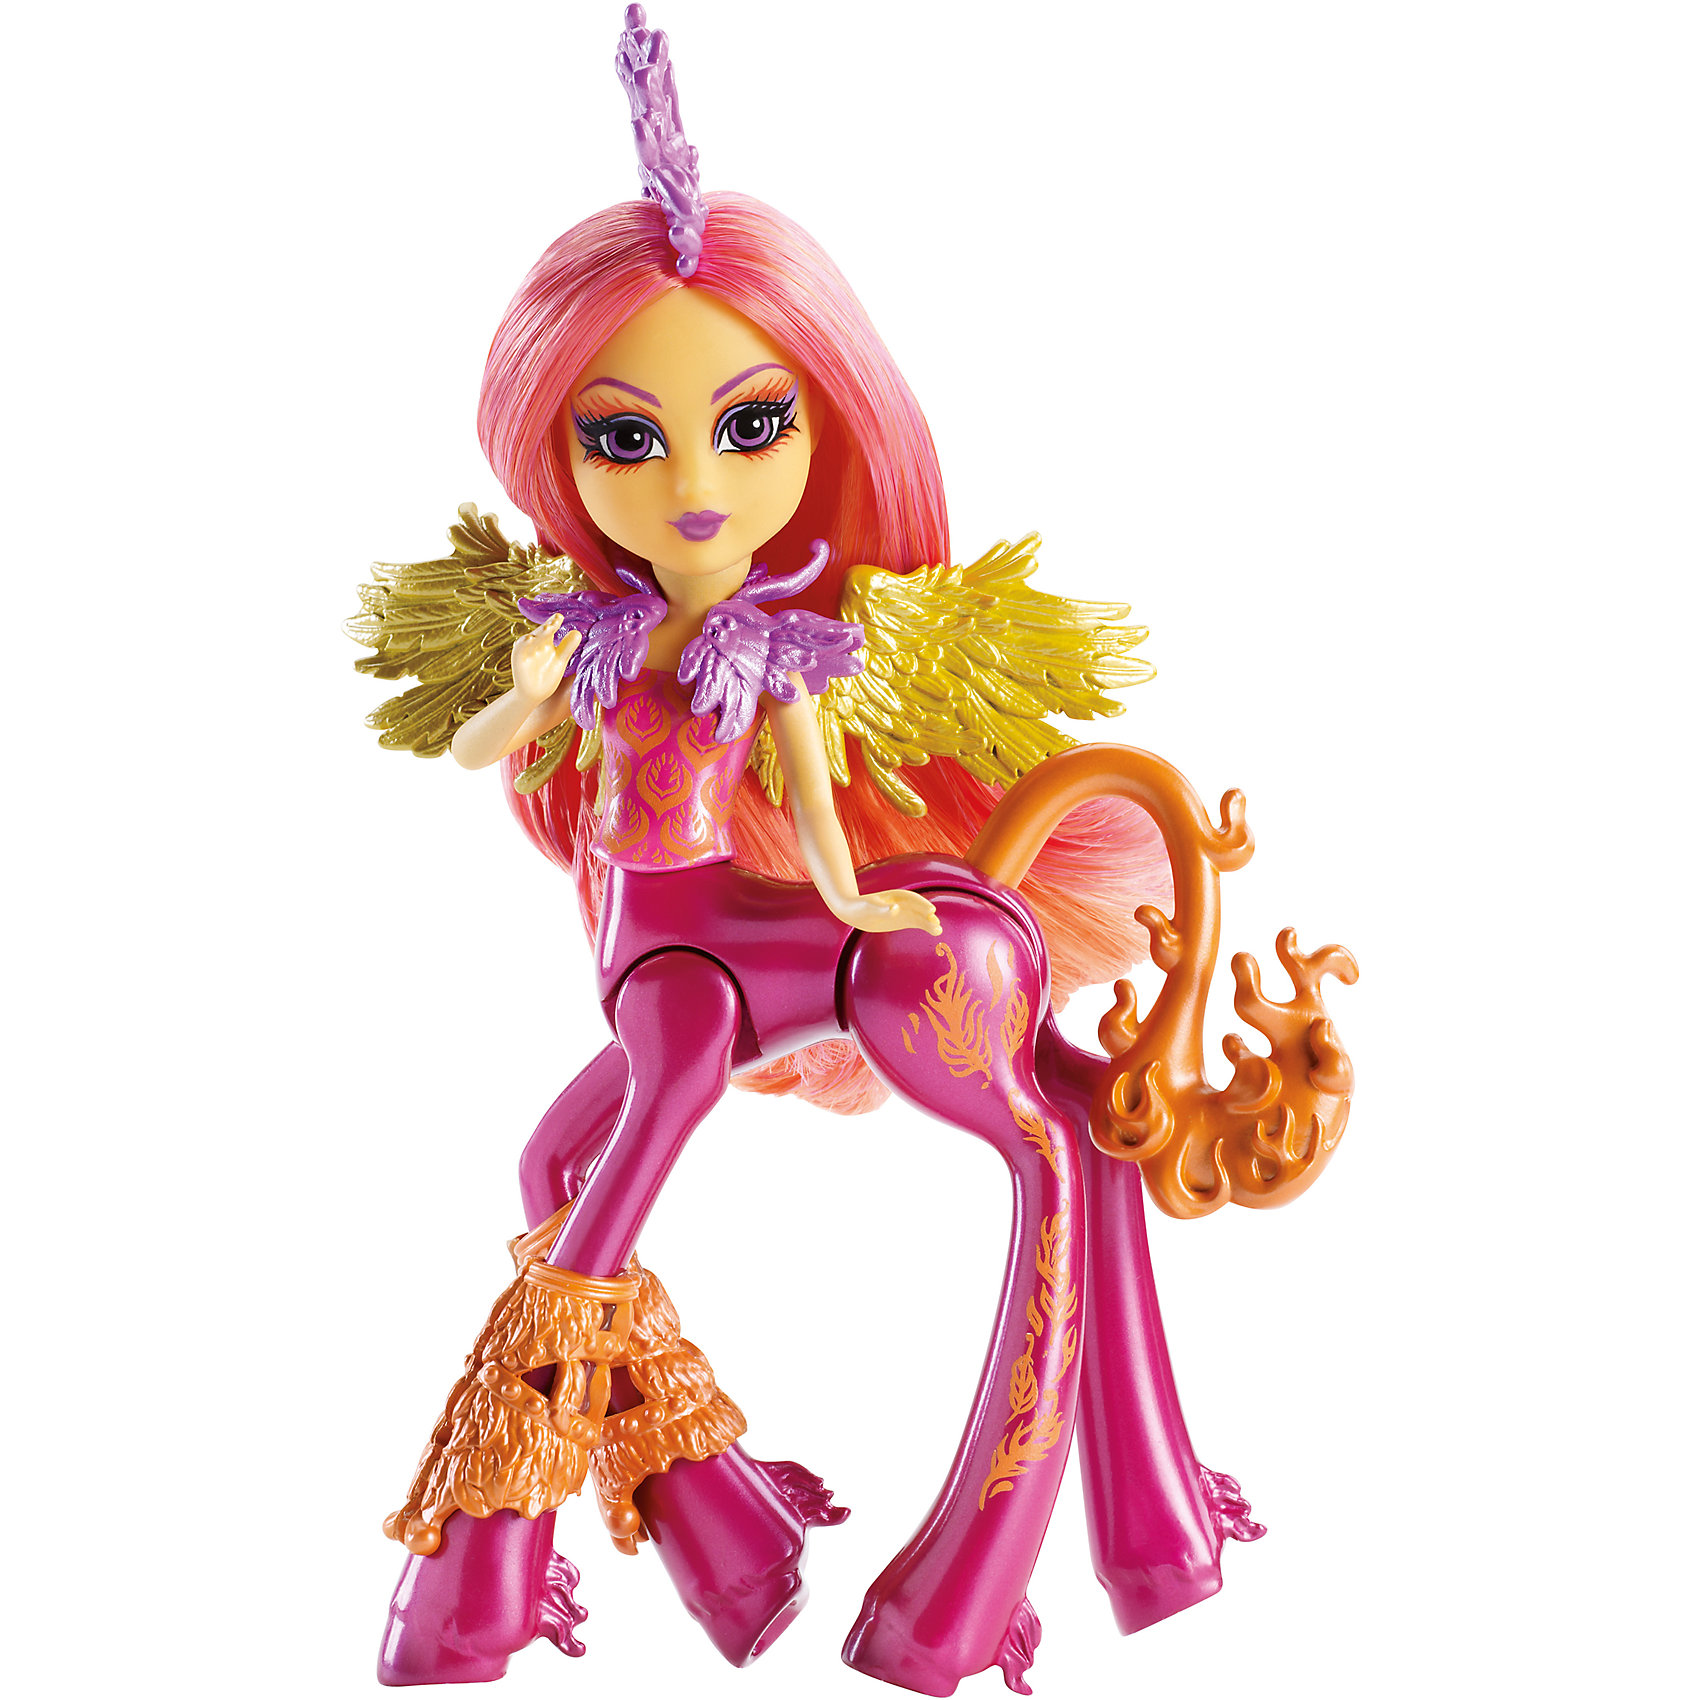 Mattel Кукла  Flara Blaze Fright-Mares, Monster High кукла monster high кентавр пикси прэпстокингс